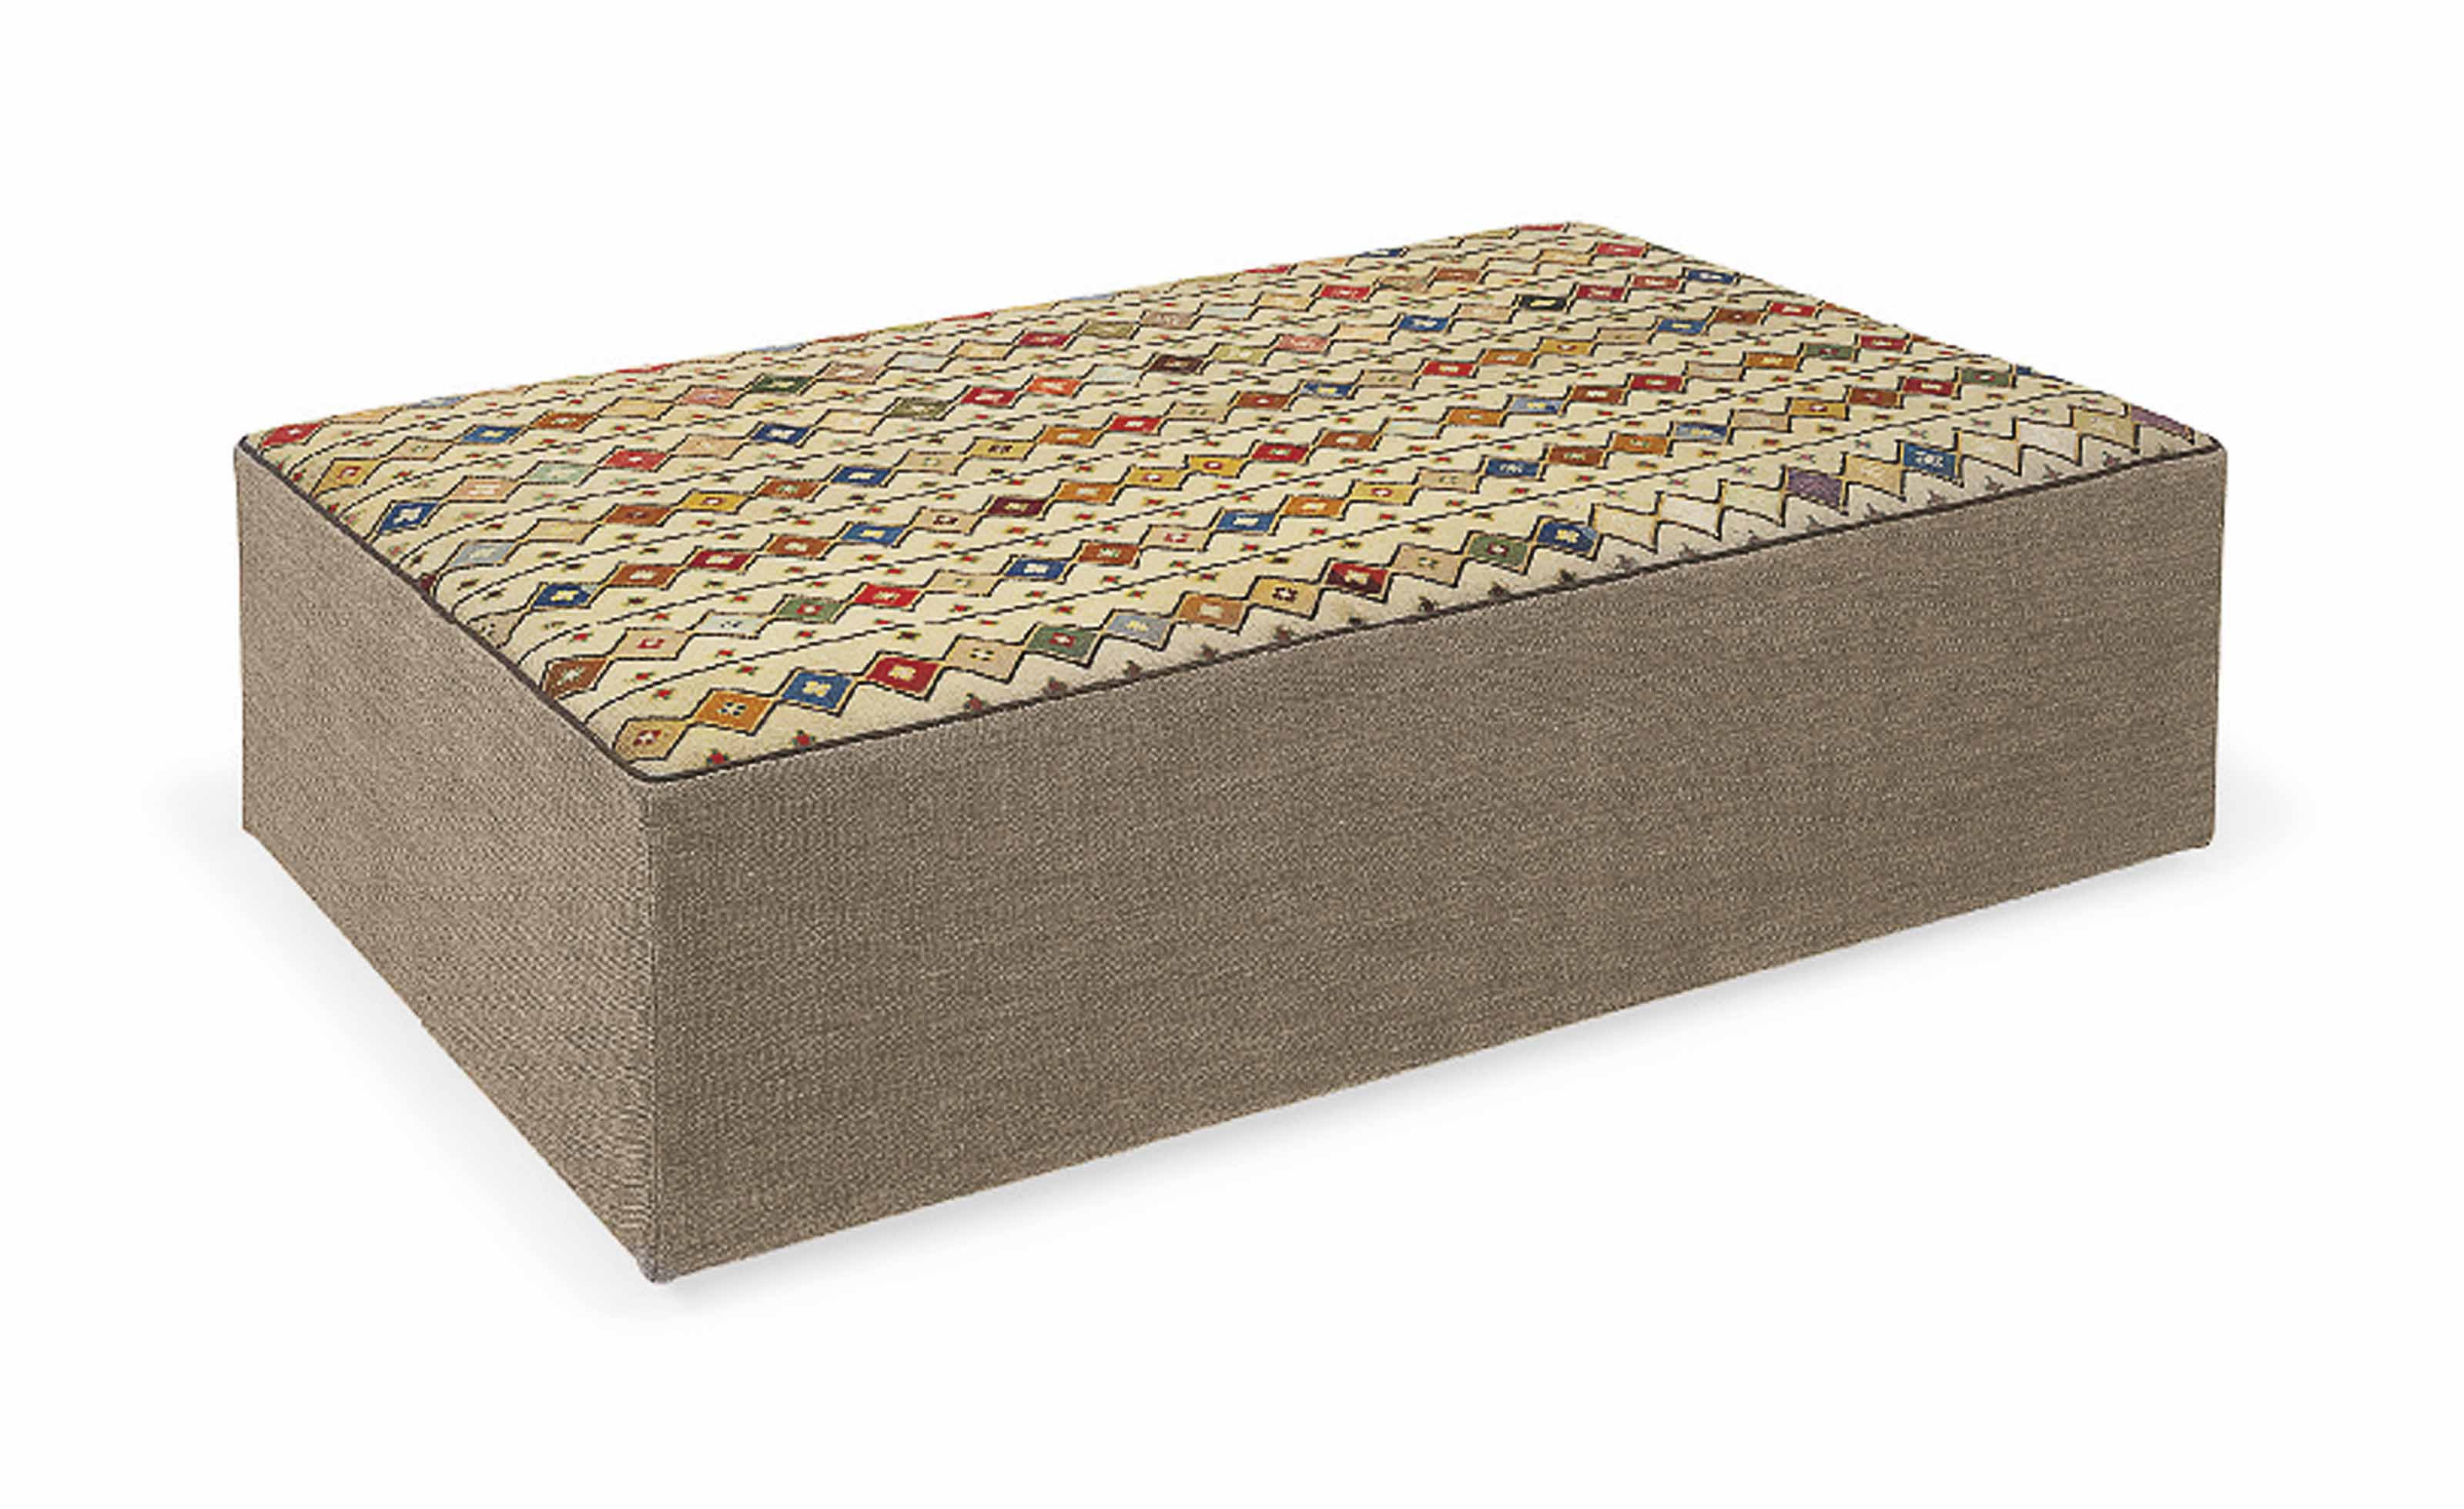 A GEOMETRIC NEEDLEWORK-COVERED OTTOMAN